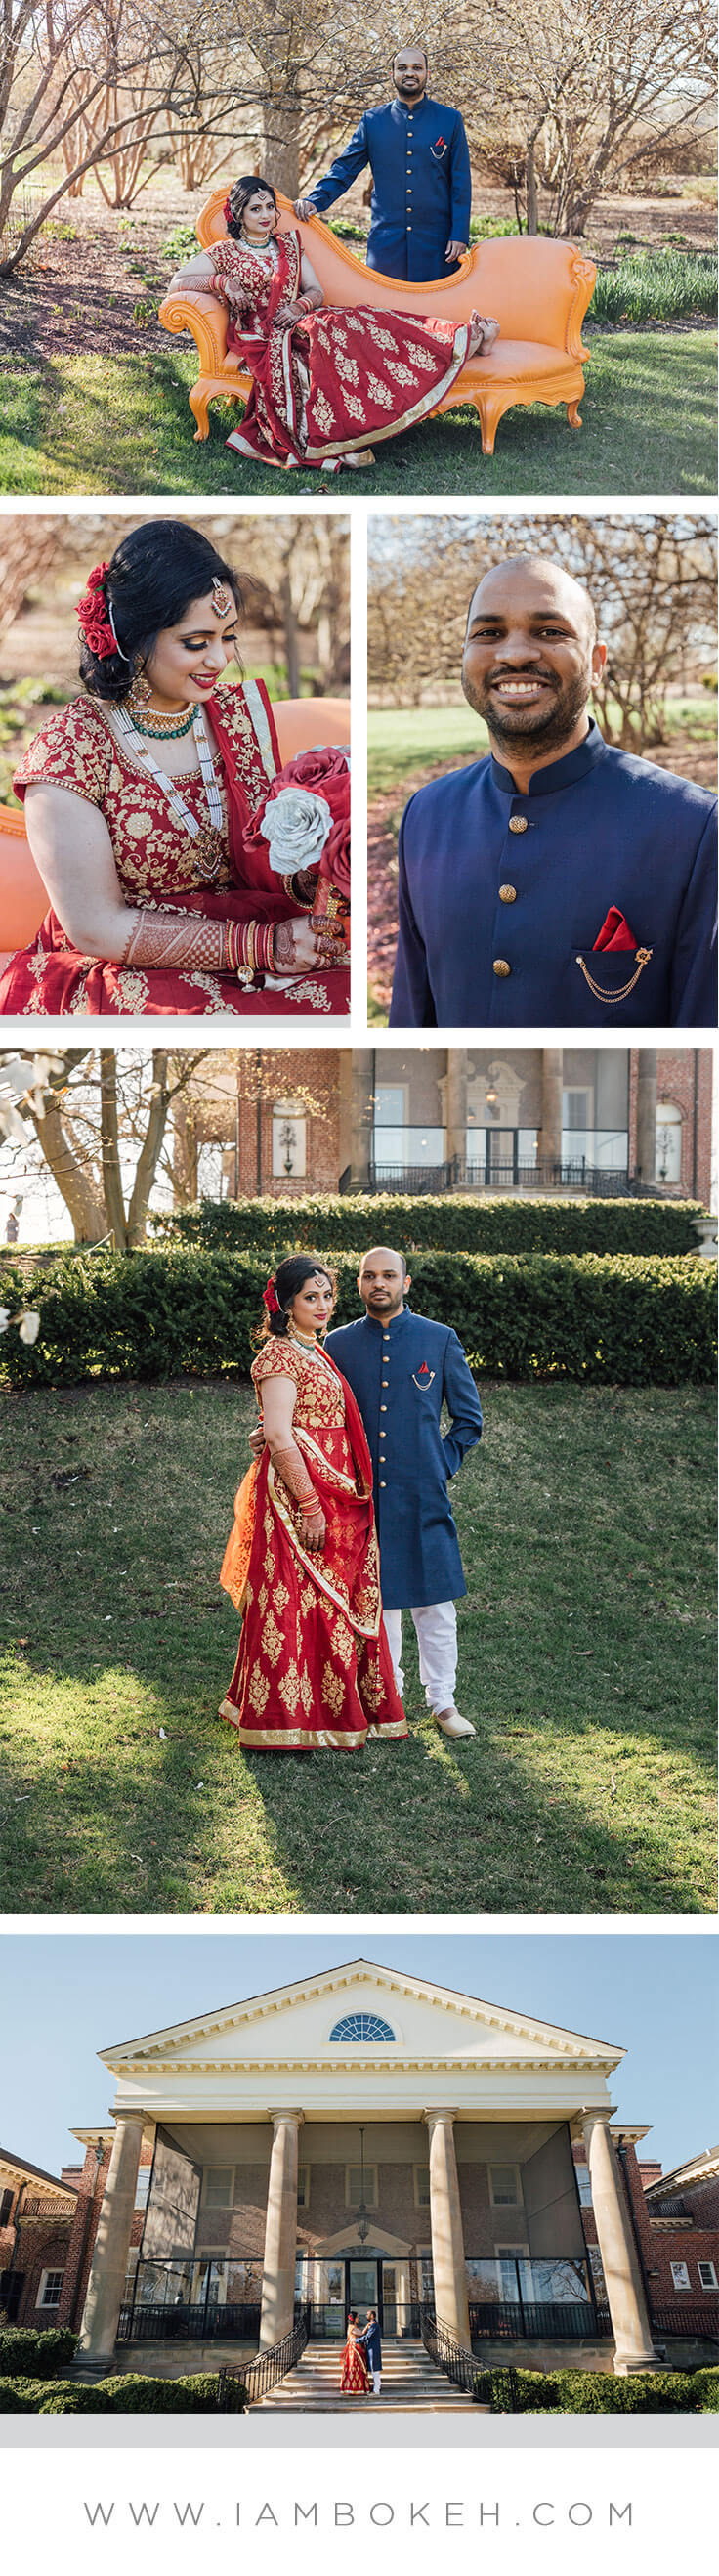 Bokéh Studios | Downers Grove Wedding at Ashyana Banquets: Rohan & Fatima